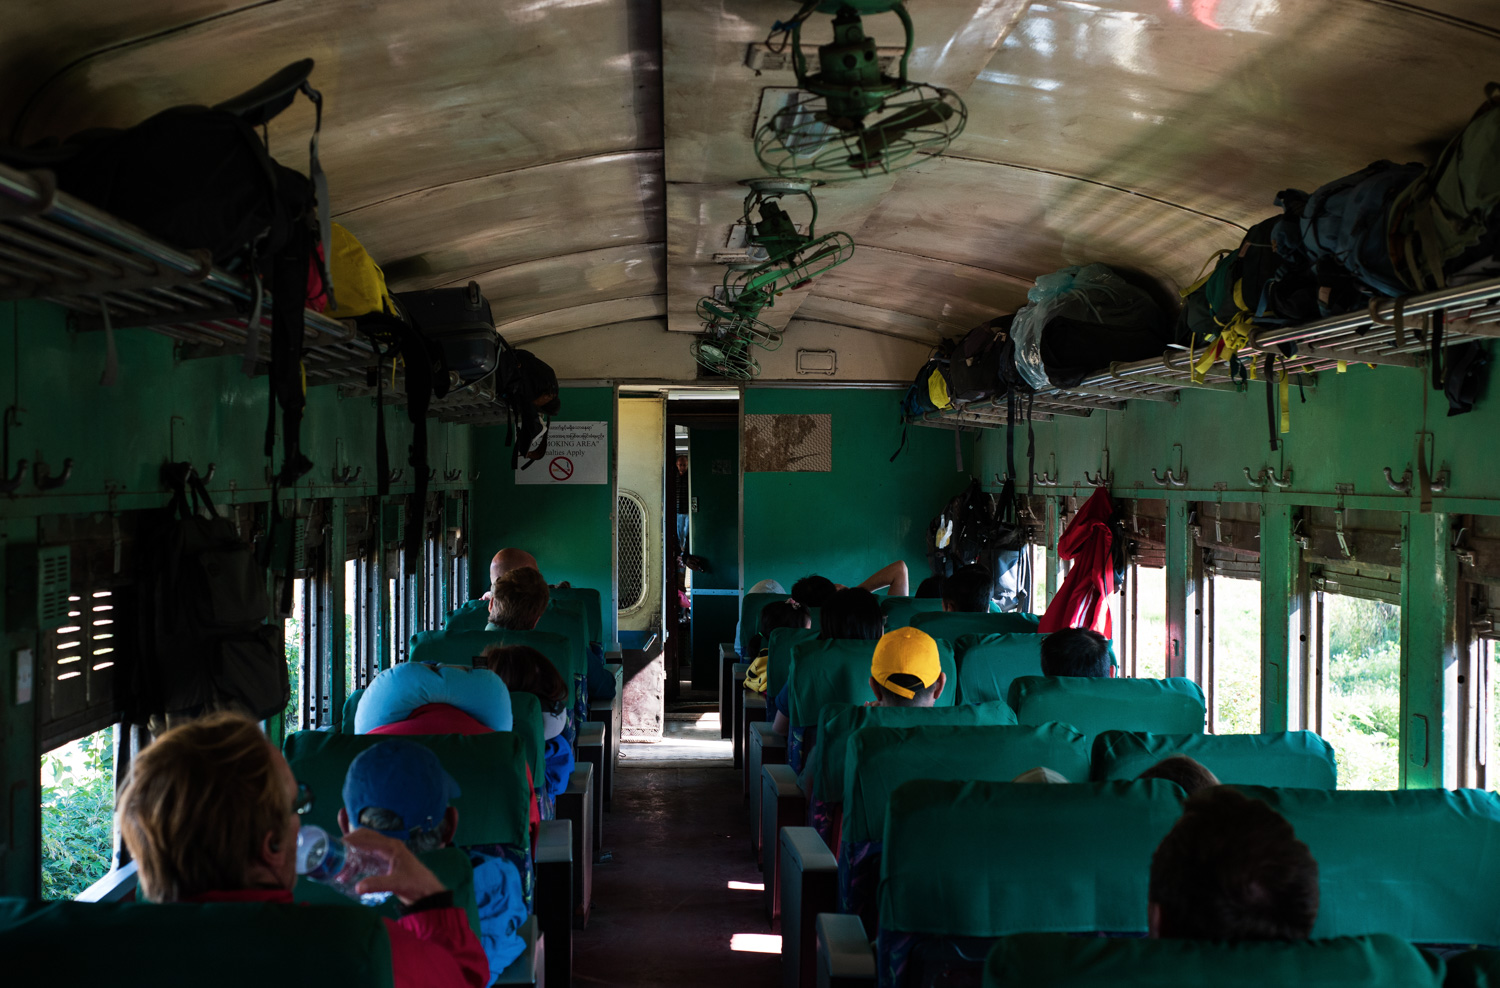 The green interior of the Mandalay-Lashio Gokteik train carriage with its old furnishings (most of which don't function).